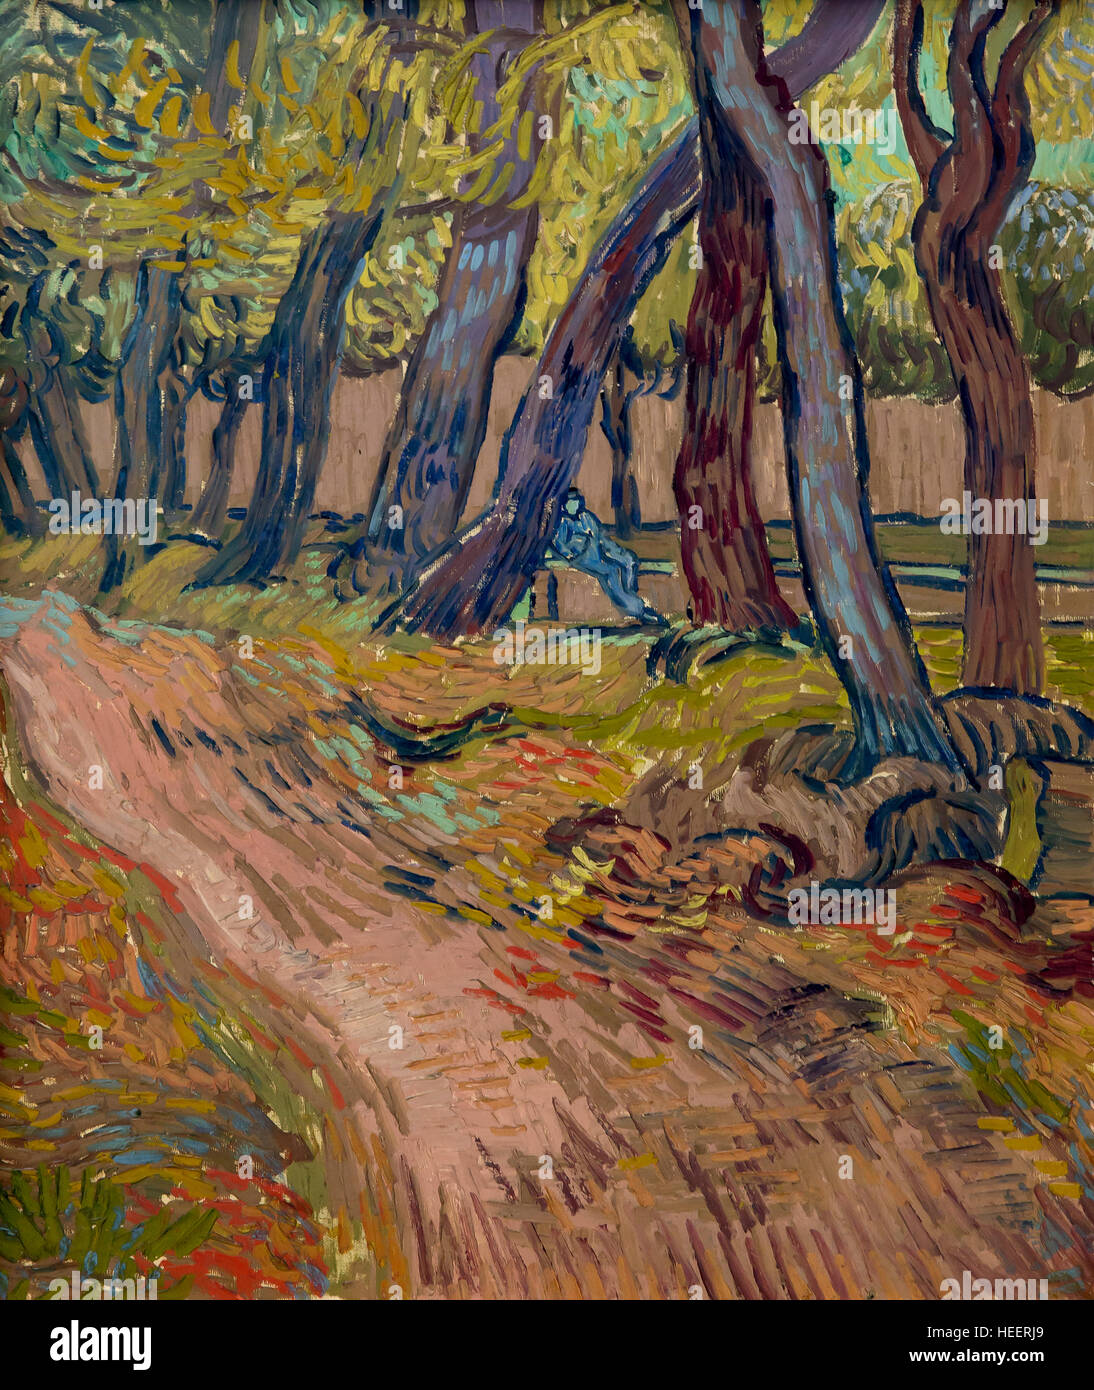 Path in the Garden of the Asylum, by Vincent van Gogh, 1889, Kroller-Muller Museum, Hoge Veluwe National Park, Otterlo, - Stock Image